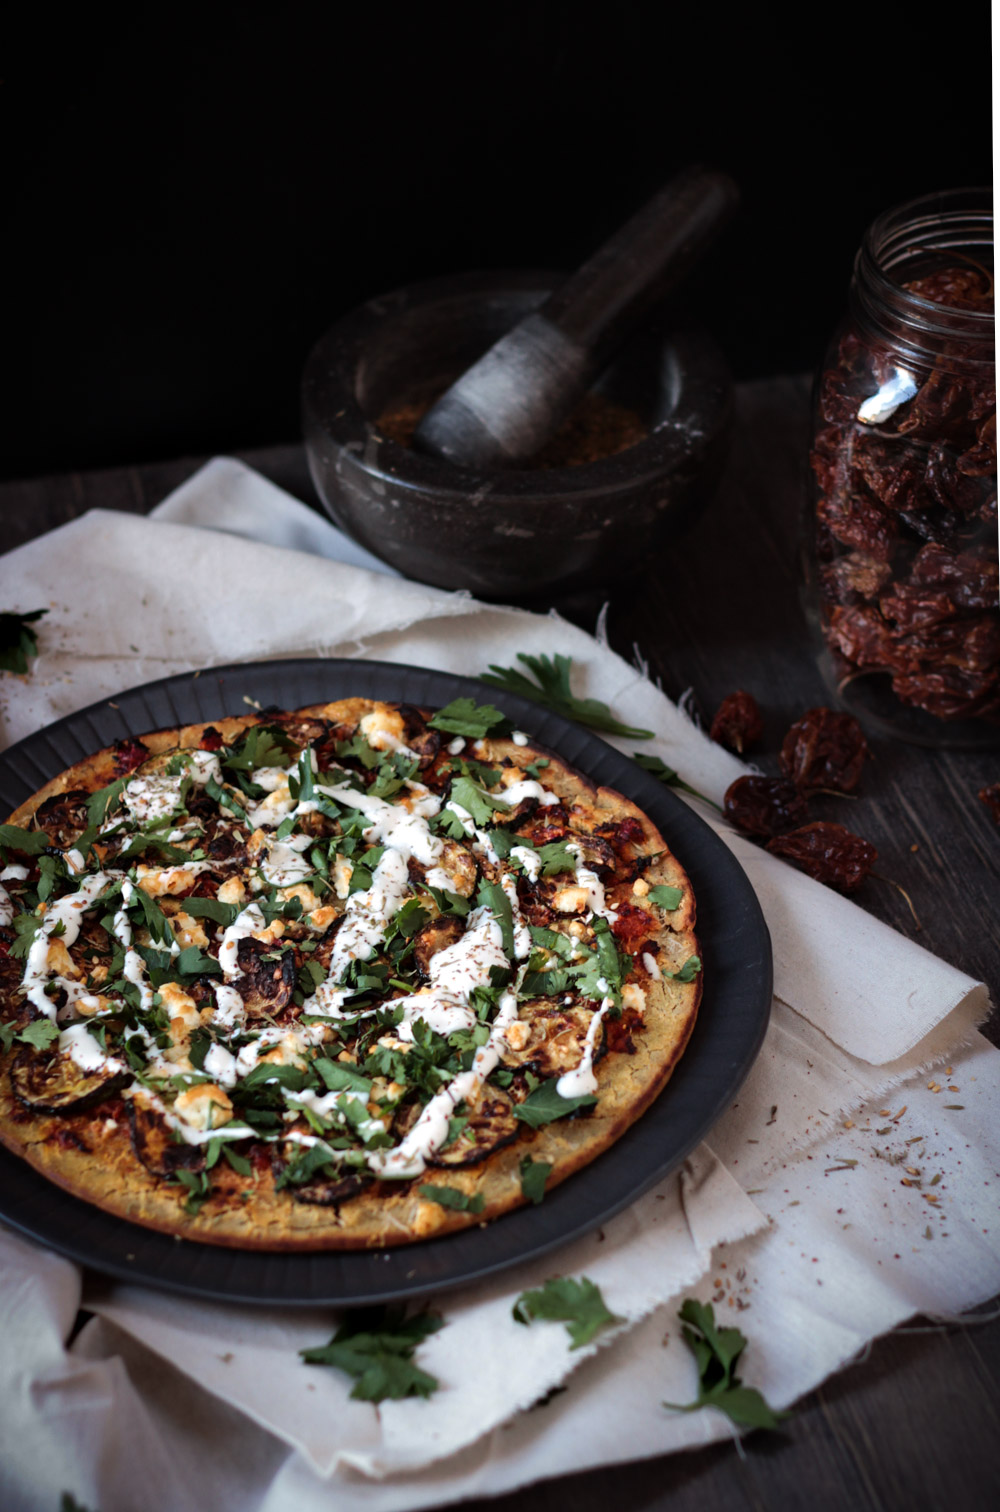 Moroccan-style socca pizza - to her core